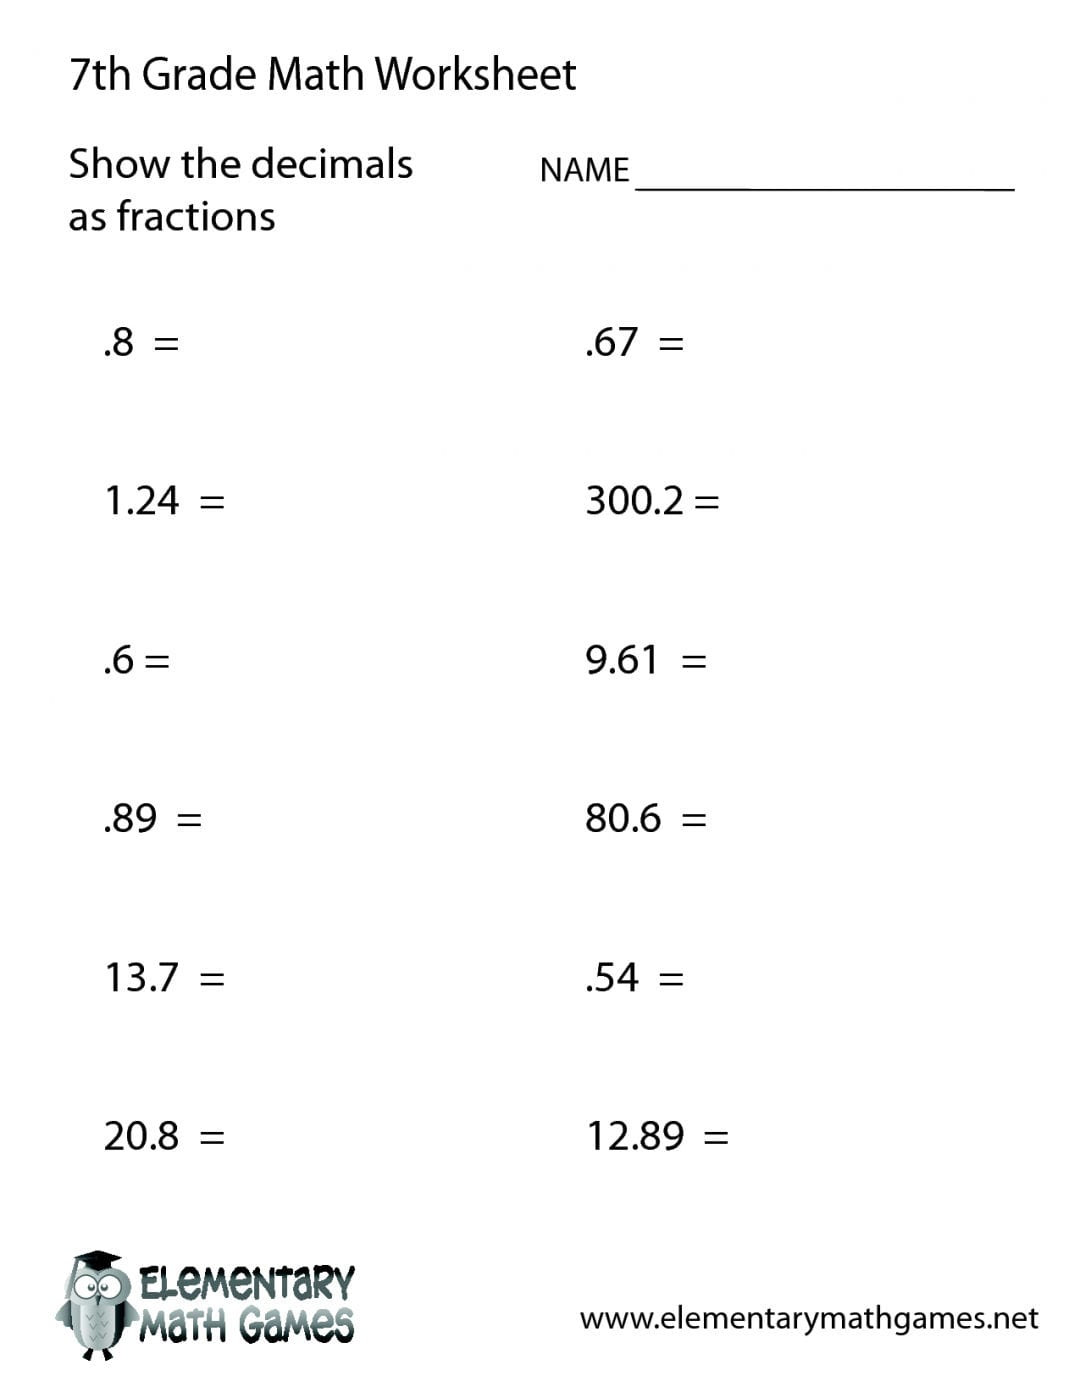 Worksheet 6Th Grade Math Practice Worksheets Grade Math Worksheets For 7Th Grade Common Core Math Worksheets With Answer Key